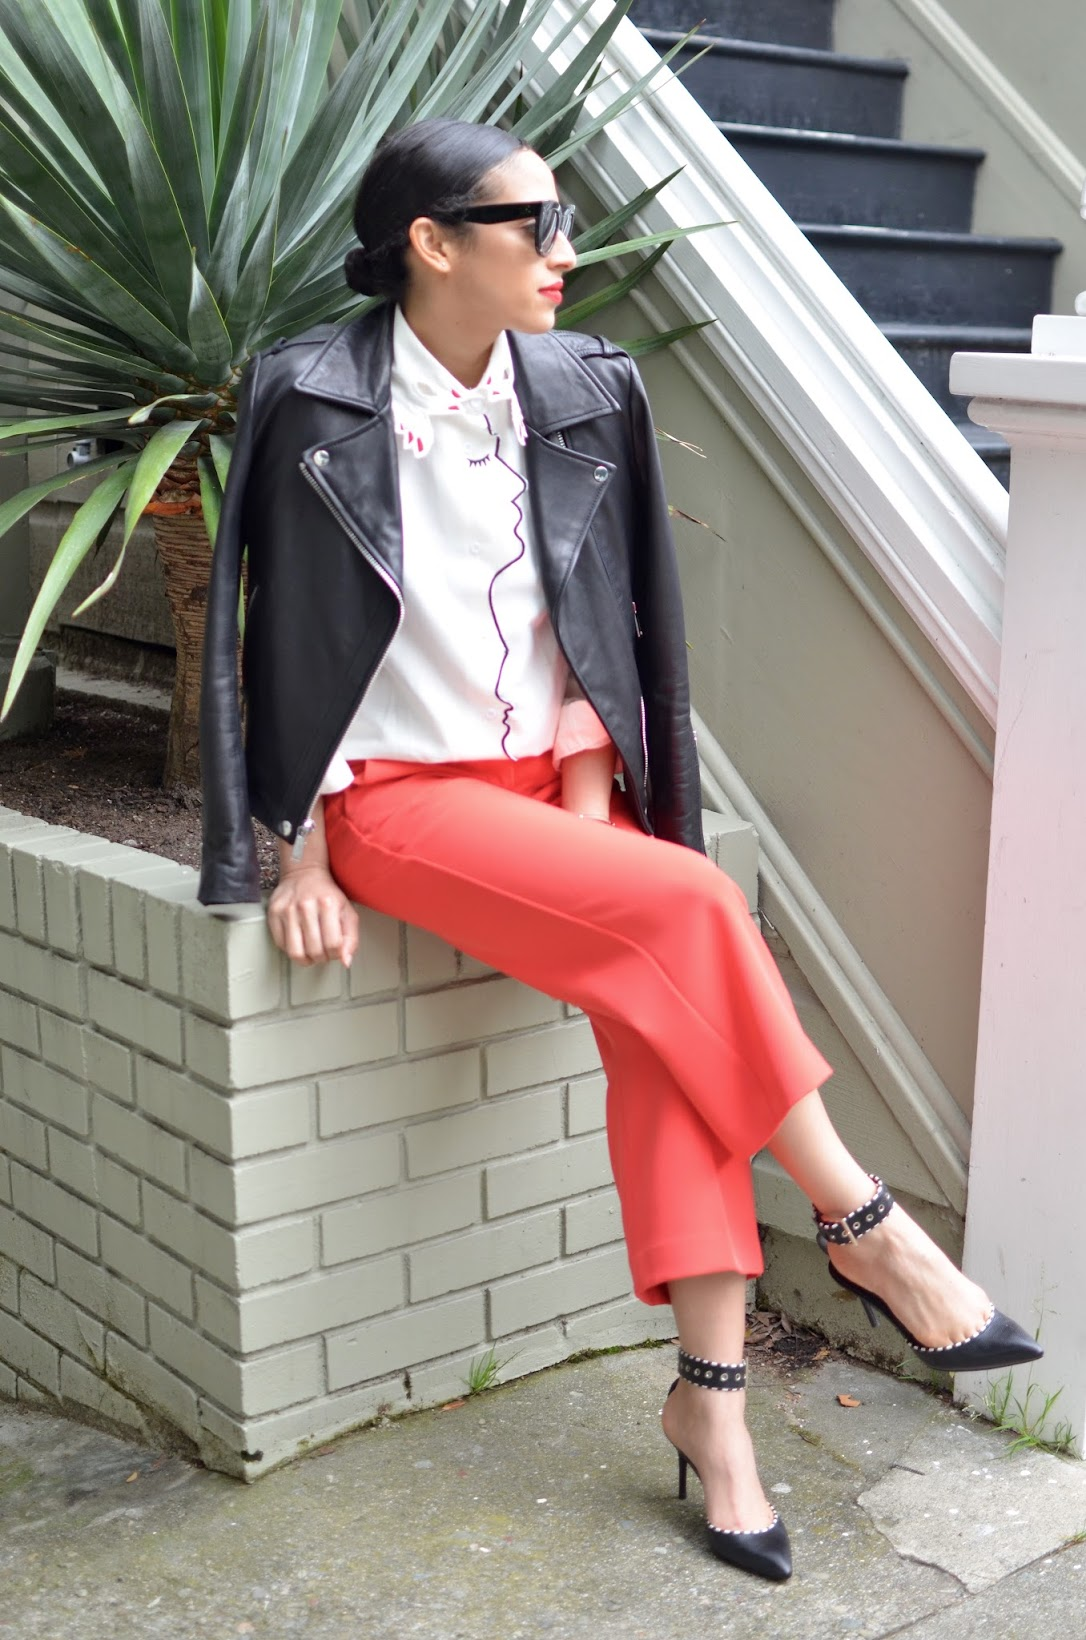 The Harbingers online store, Finger collar shirt, Coach leather moto jacket, Coach, Express red cropped pants, Céline sunglasses, Céline cateye sunglasses, red lipstick, Stila Beso lipstick, brian atwood heels